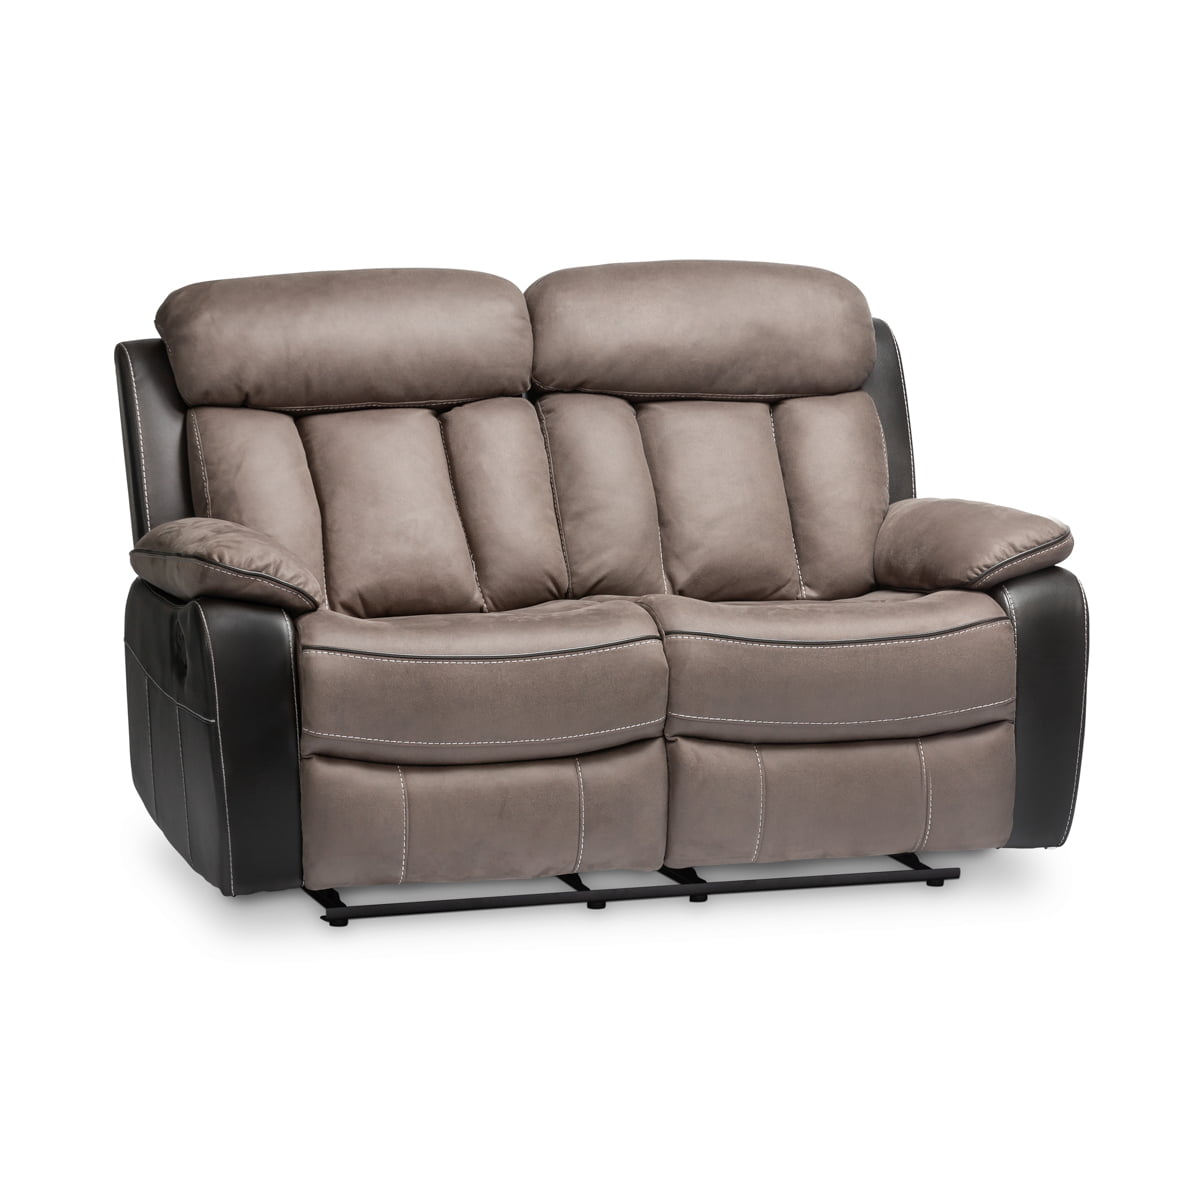 Junior Two Tone 3 Seater Recliner